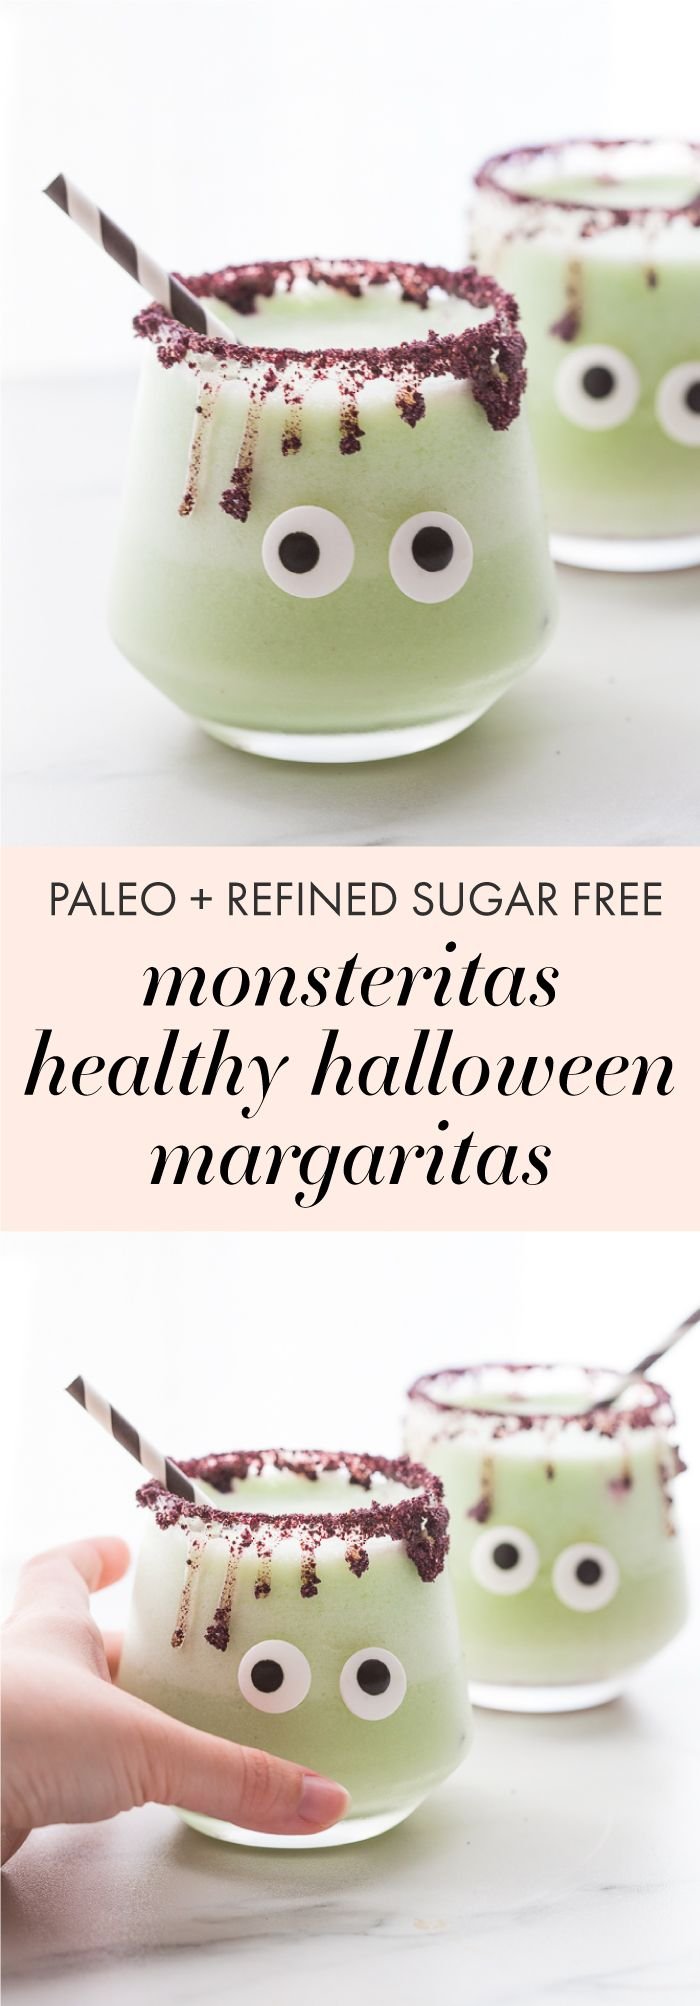 """These """"monsteritas"""" are healthy Halloween margaritas spiked with cucumber and jalapeño for a trick and treat all in one! Sweetened with honey, these healthy Halloween margaritas are super festive and fun without any refined sugar or artificial coloring. With a freeze-dried blueberry rim and two candy eyes, these healthy Halloween margaritas are a must make for any adult Halloween party!"""